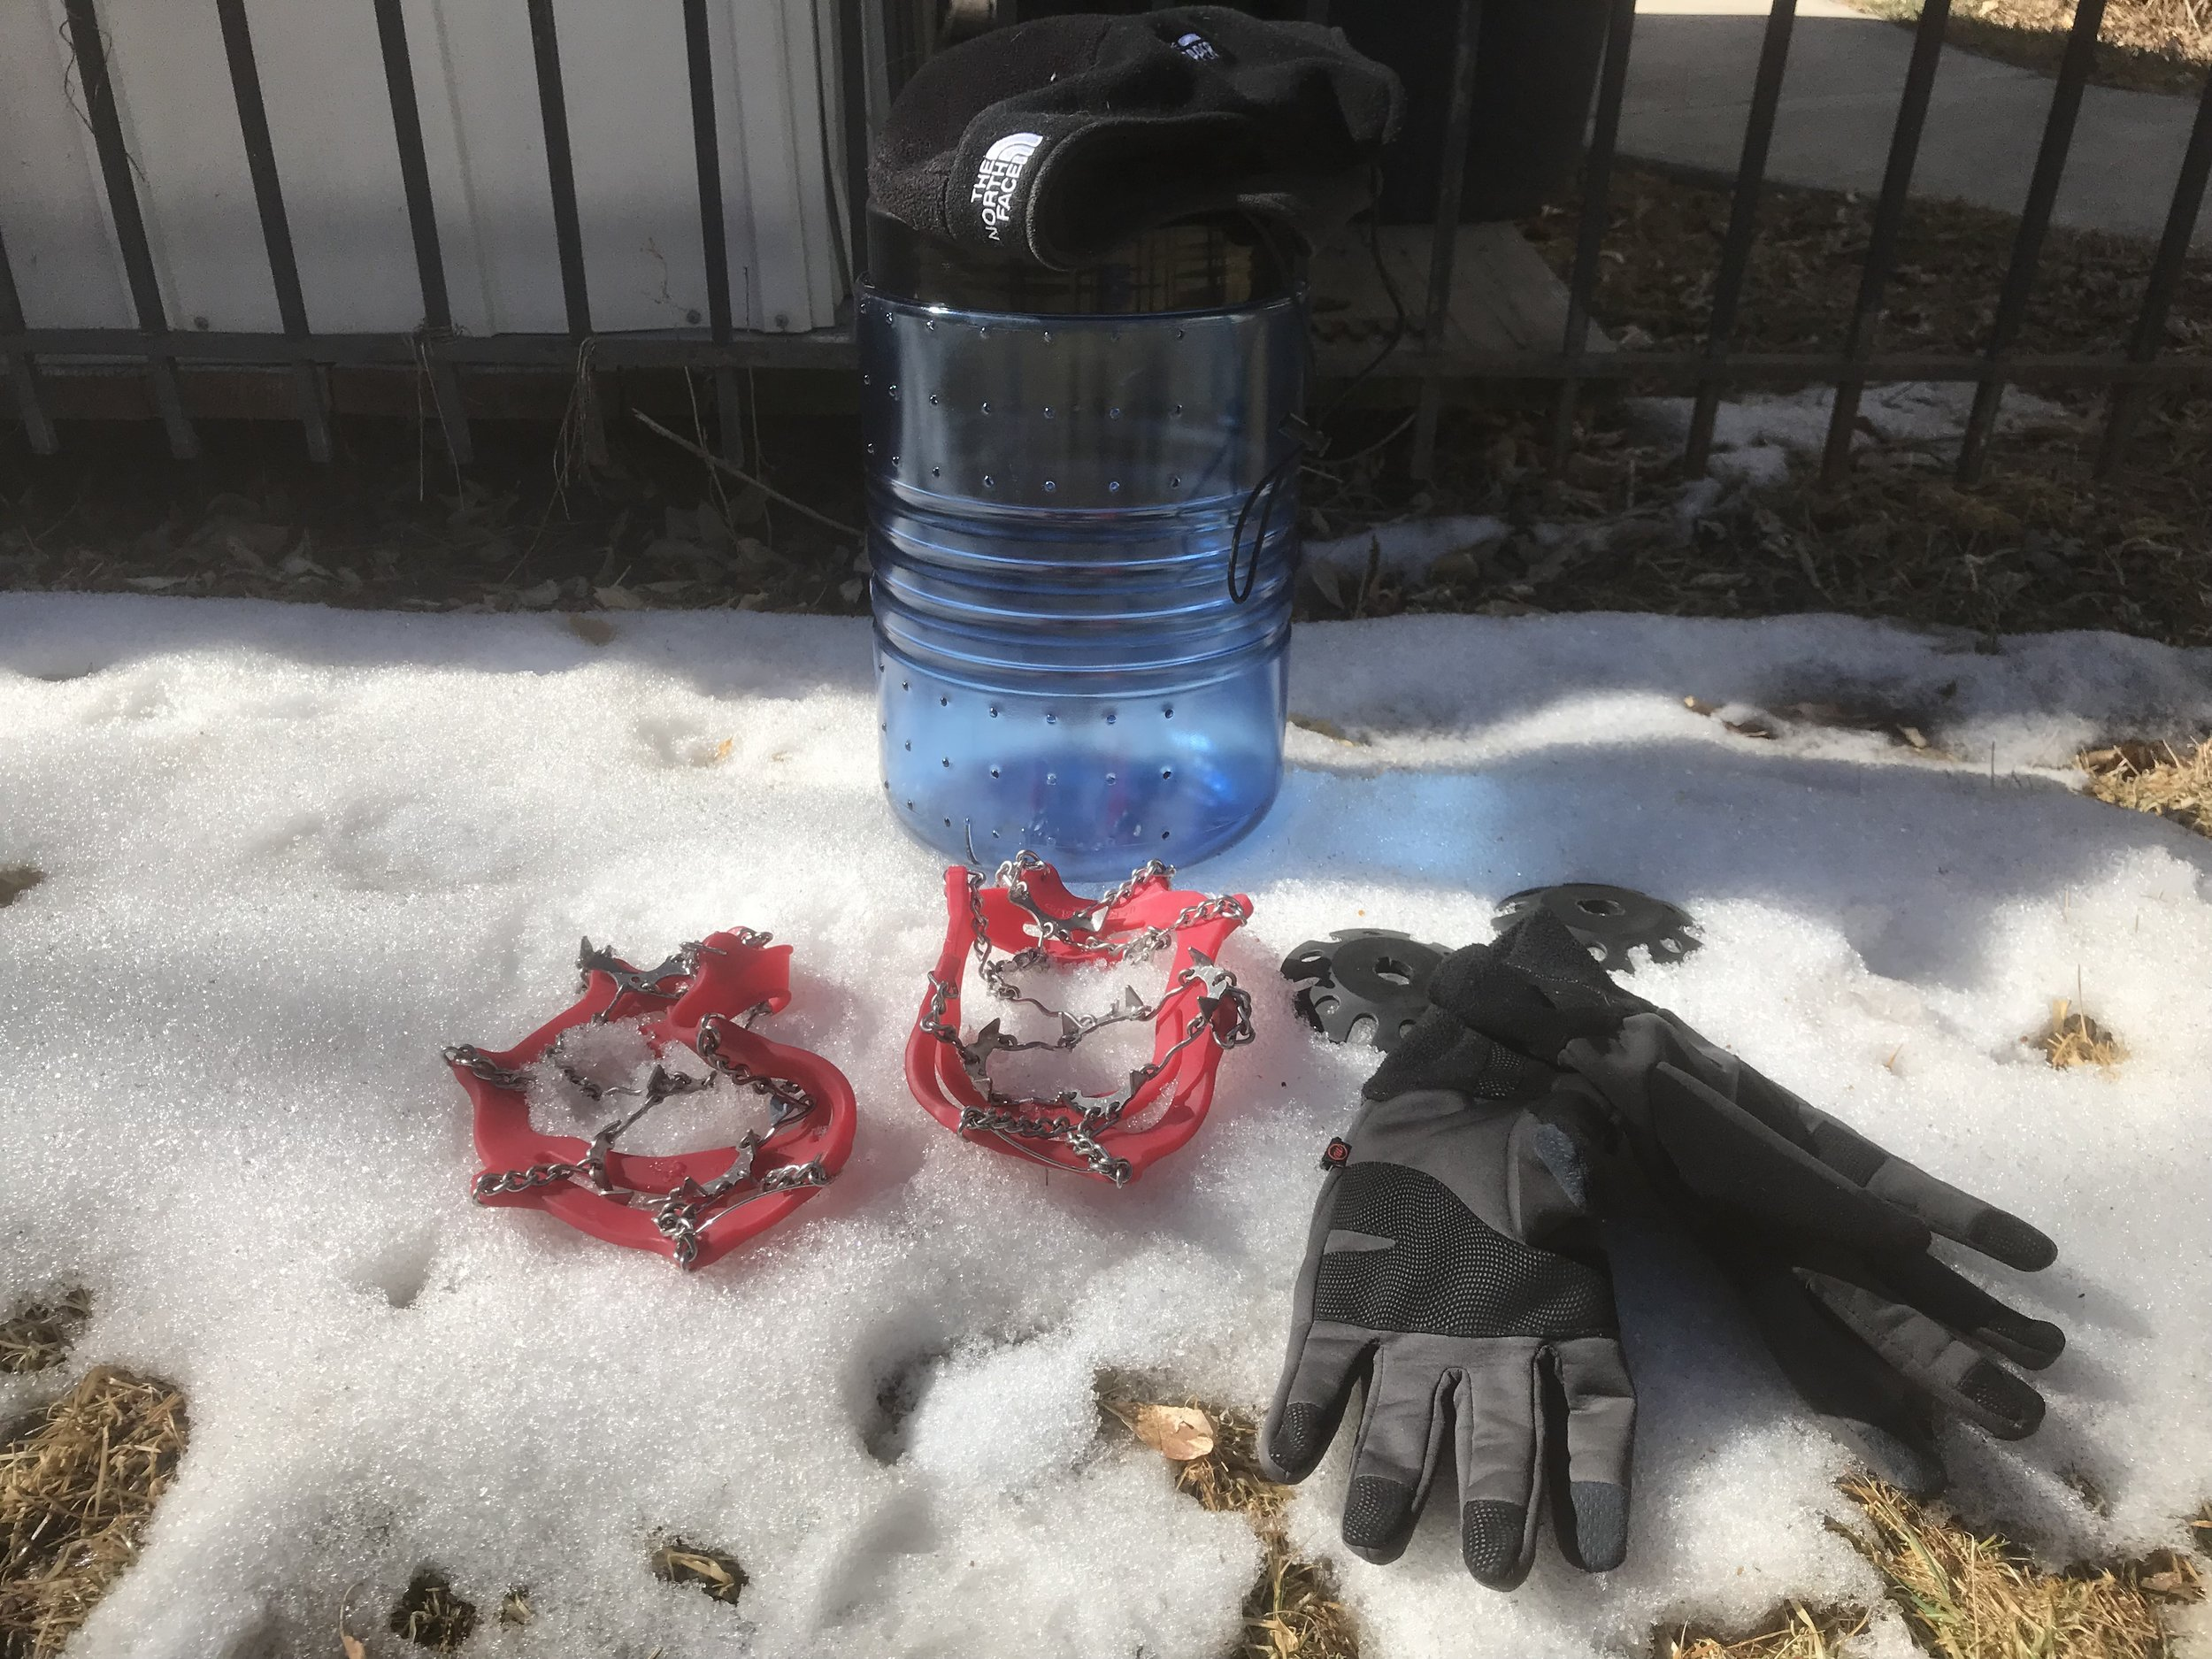 Bear canister, crampons and snow feet needed for the high country in California.